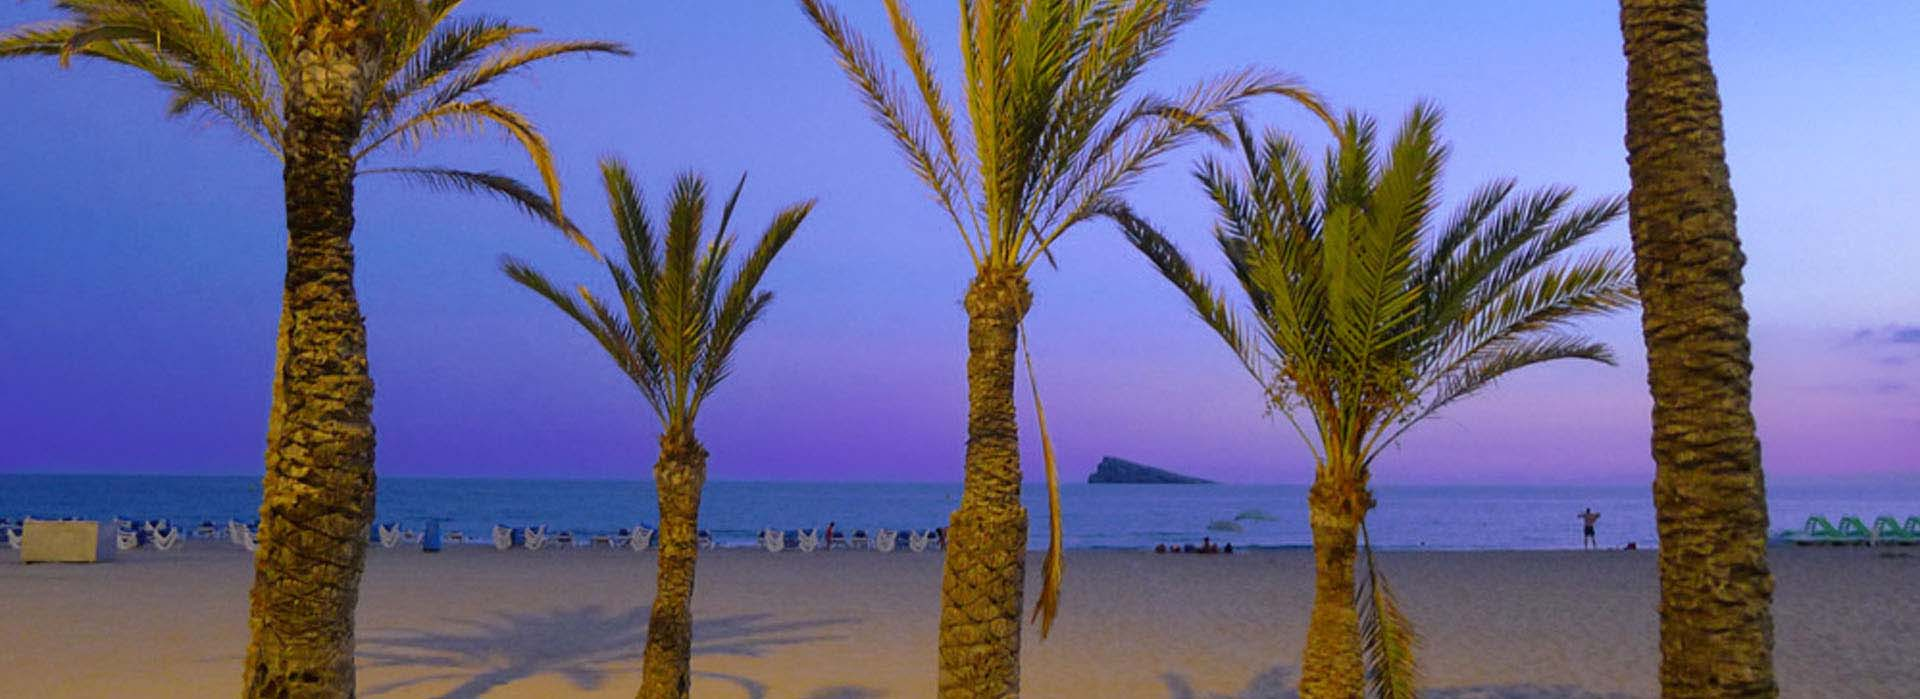 Isla de Benidorm. Benidorm island at sunset